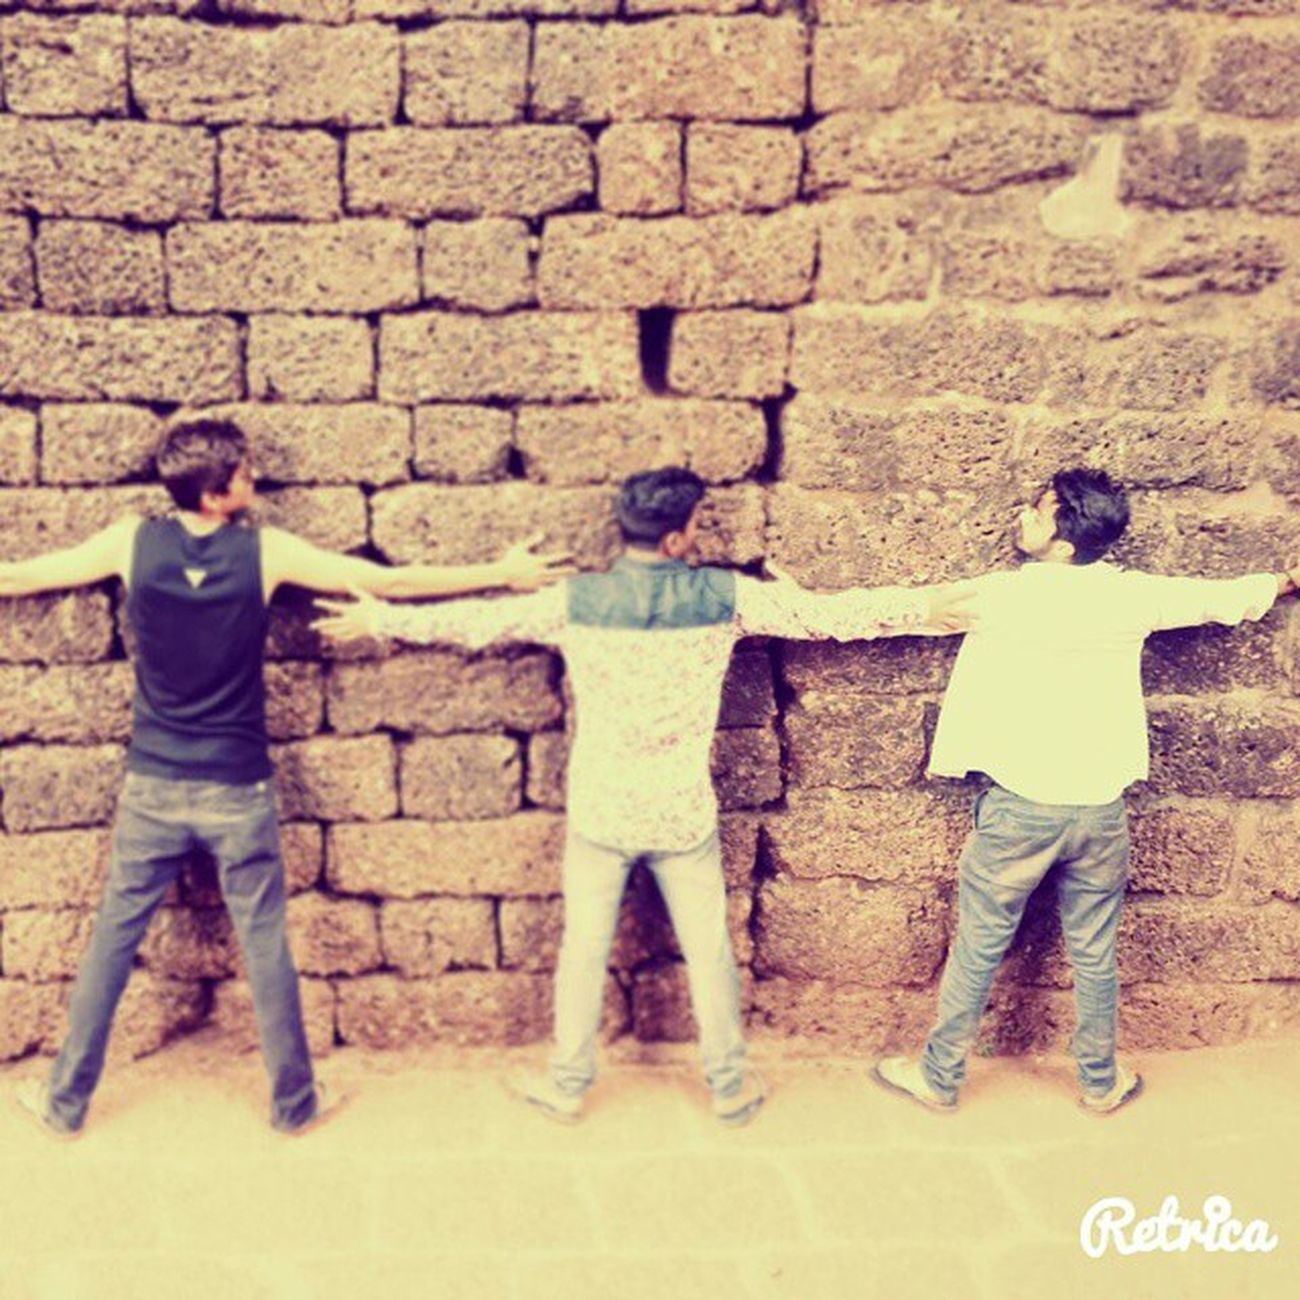 3idiots Goa Awsometrip Friends Fununlimited Tidikbum